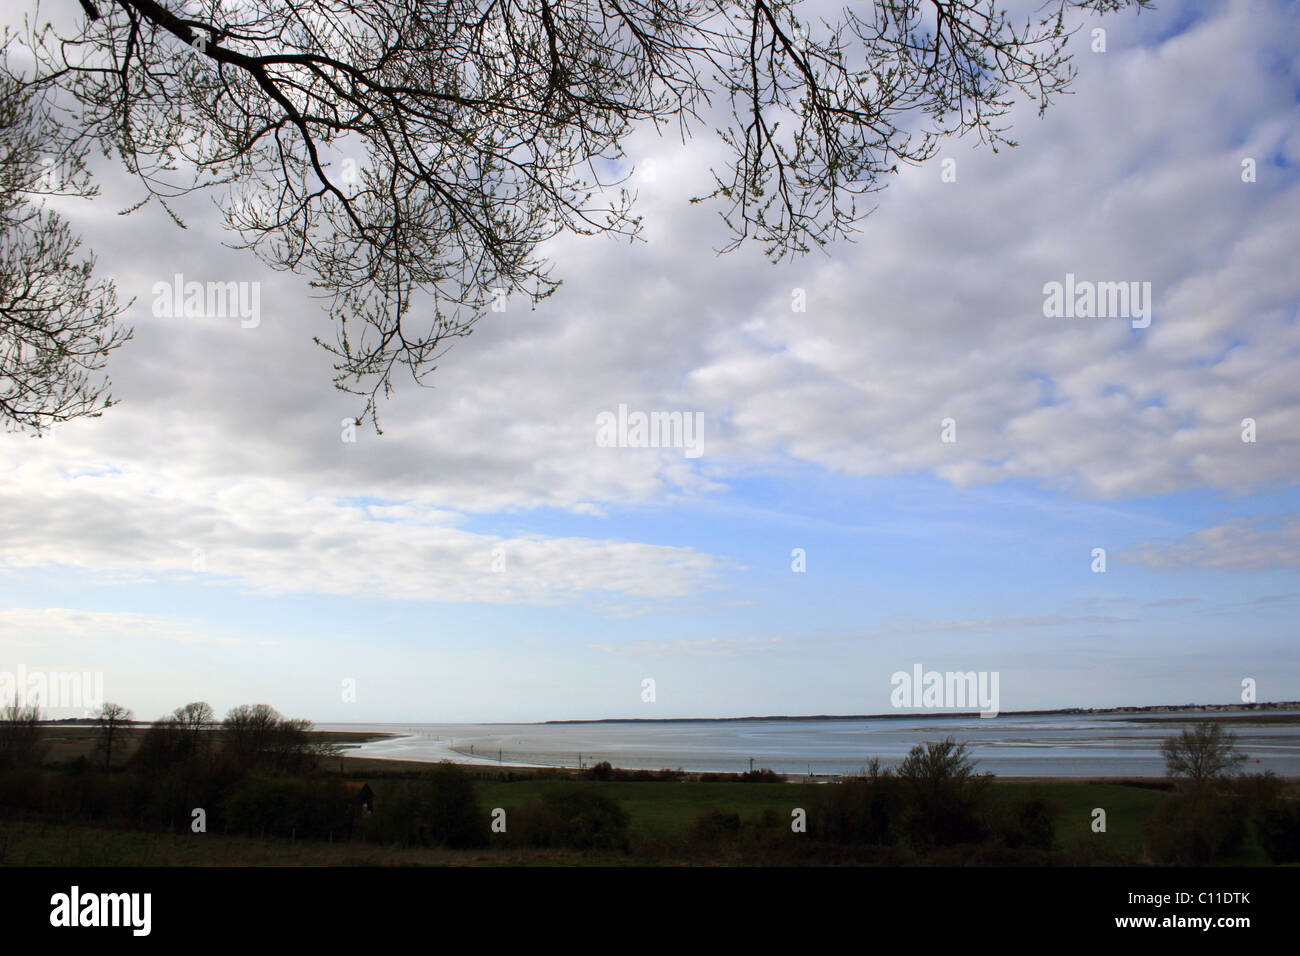 Picardie, St Valery sur Somme, France - Stock Image